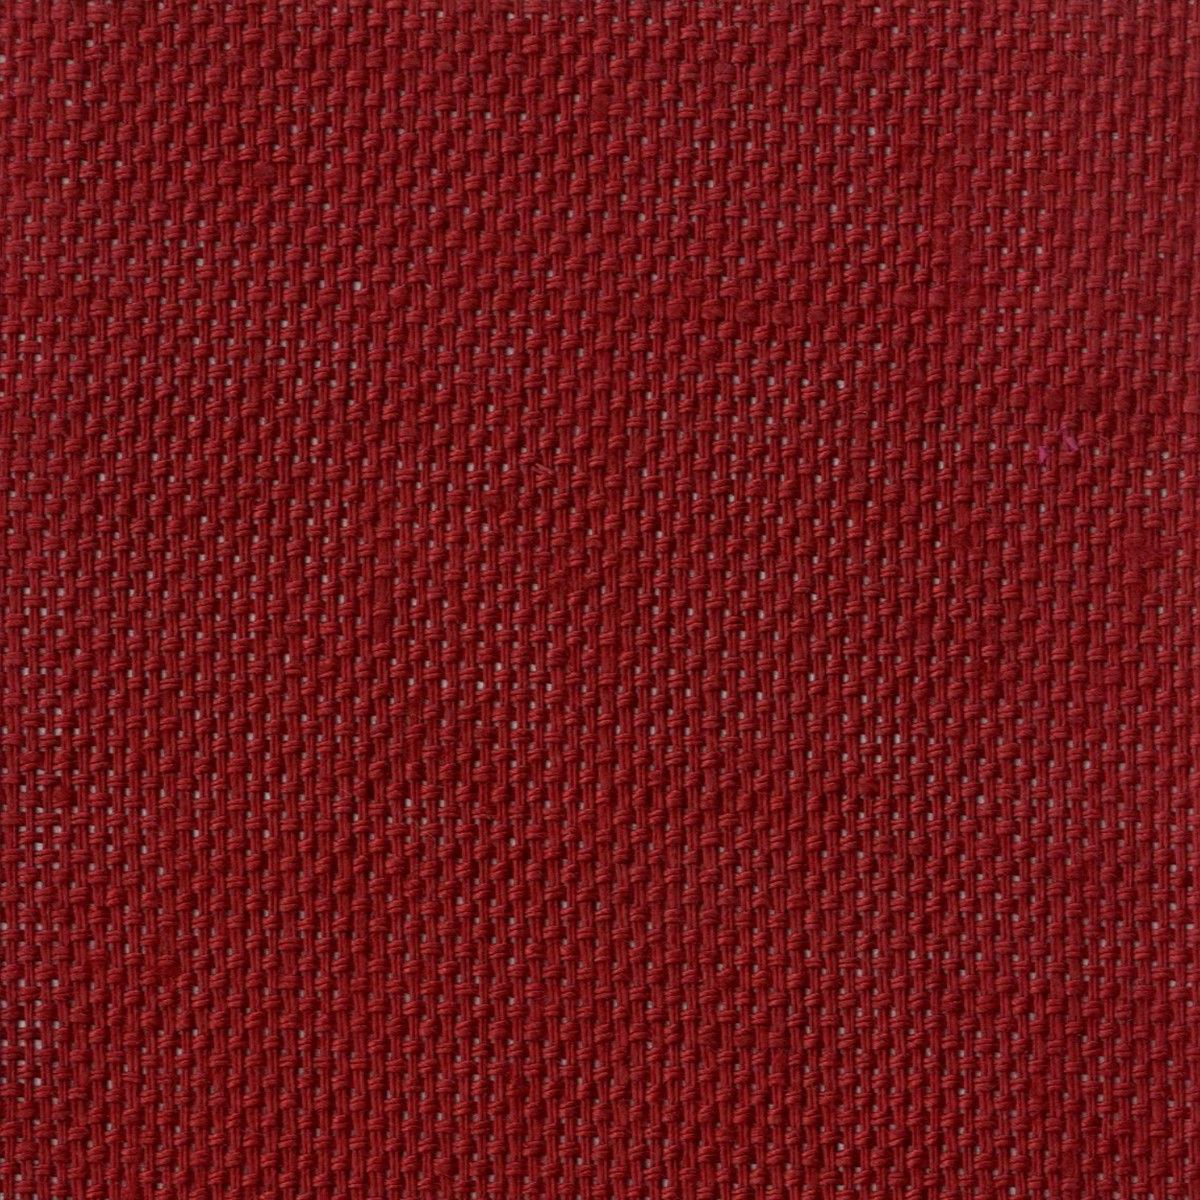 ANICHINI Fabrics | Linen Basketweave Bordeaux Residential Fabric ...